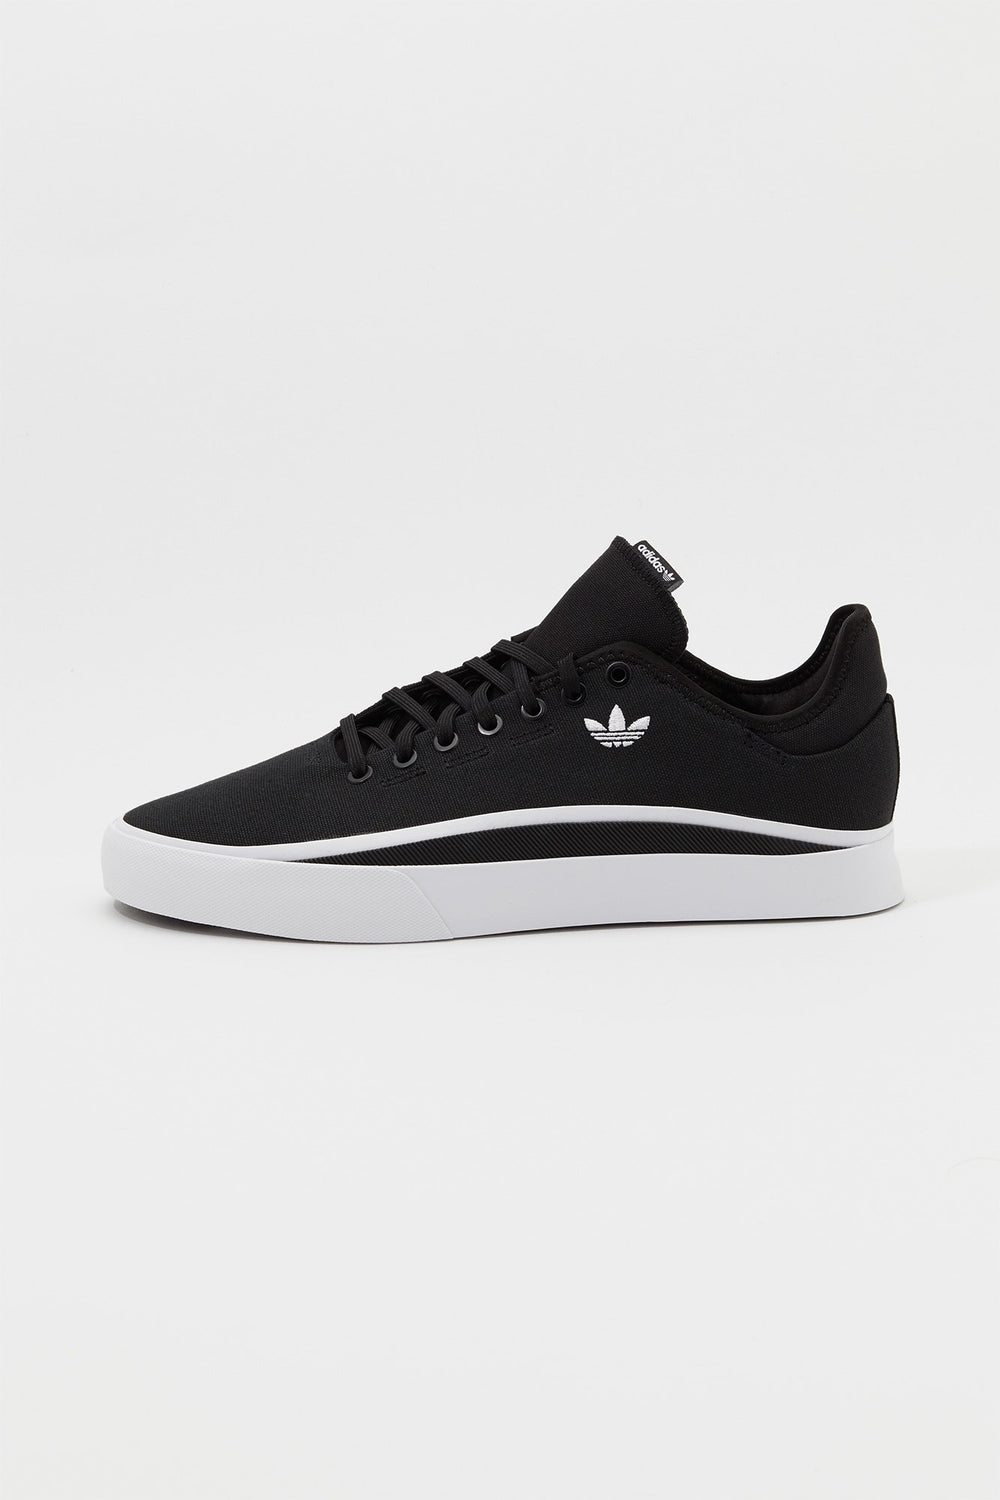 Adidas Mens Sabalo Shoes Black with White